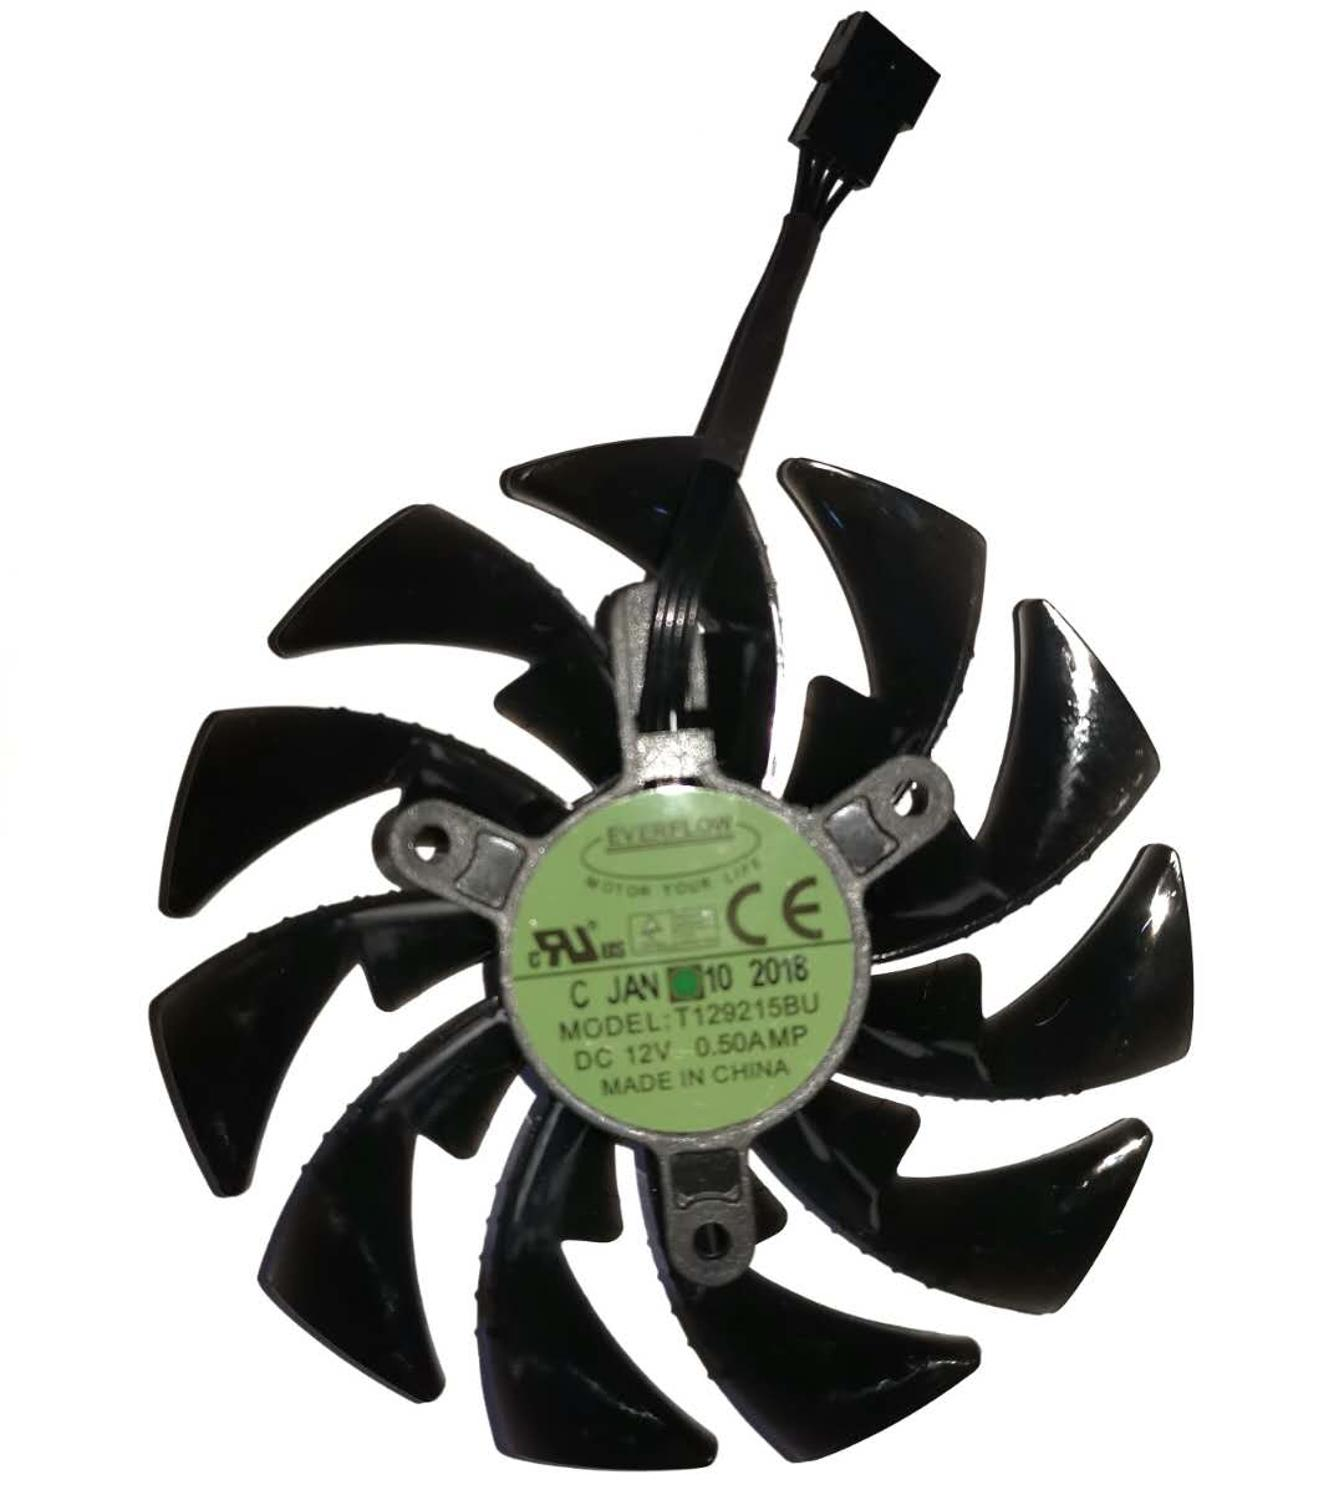 Image 5 - 95mm T129215BU DC 12V 0.55A PLD10015B12H GTX1070 GTX1080 fan For GIGAYTE AORUS GeForce GTX 1080Ti Xtreme Edition Video Card fan-in Fans & Cooling from Computer & Office